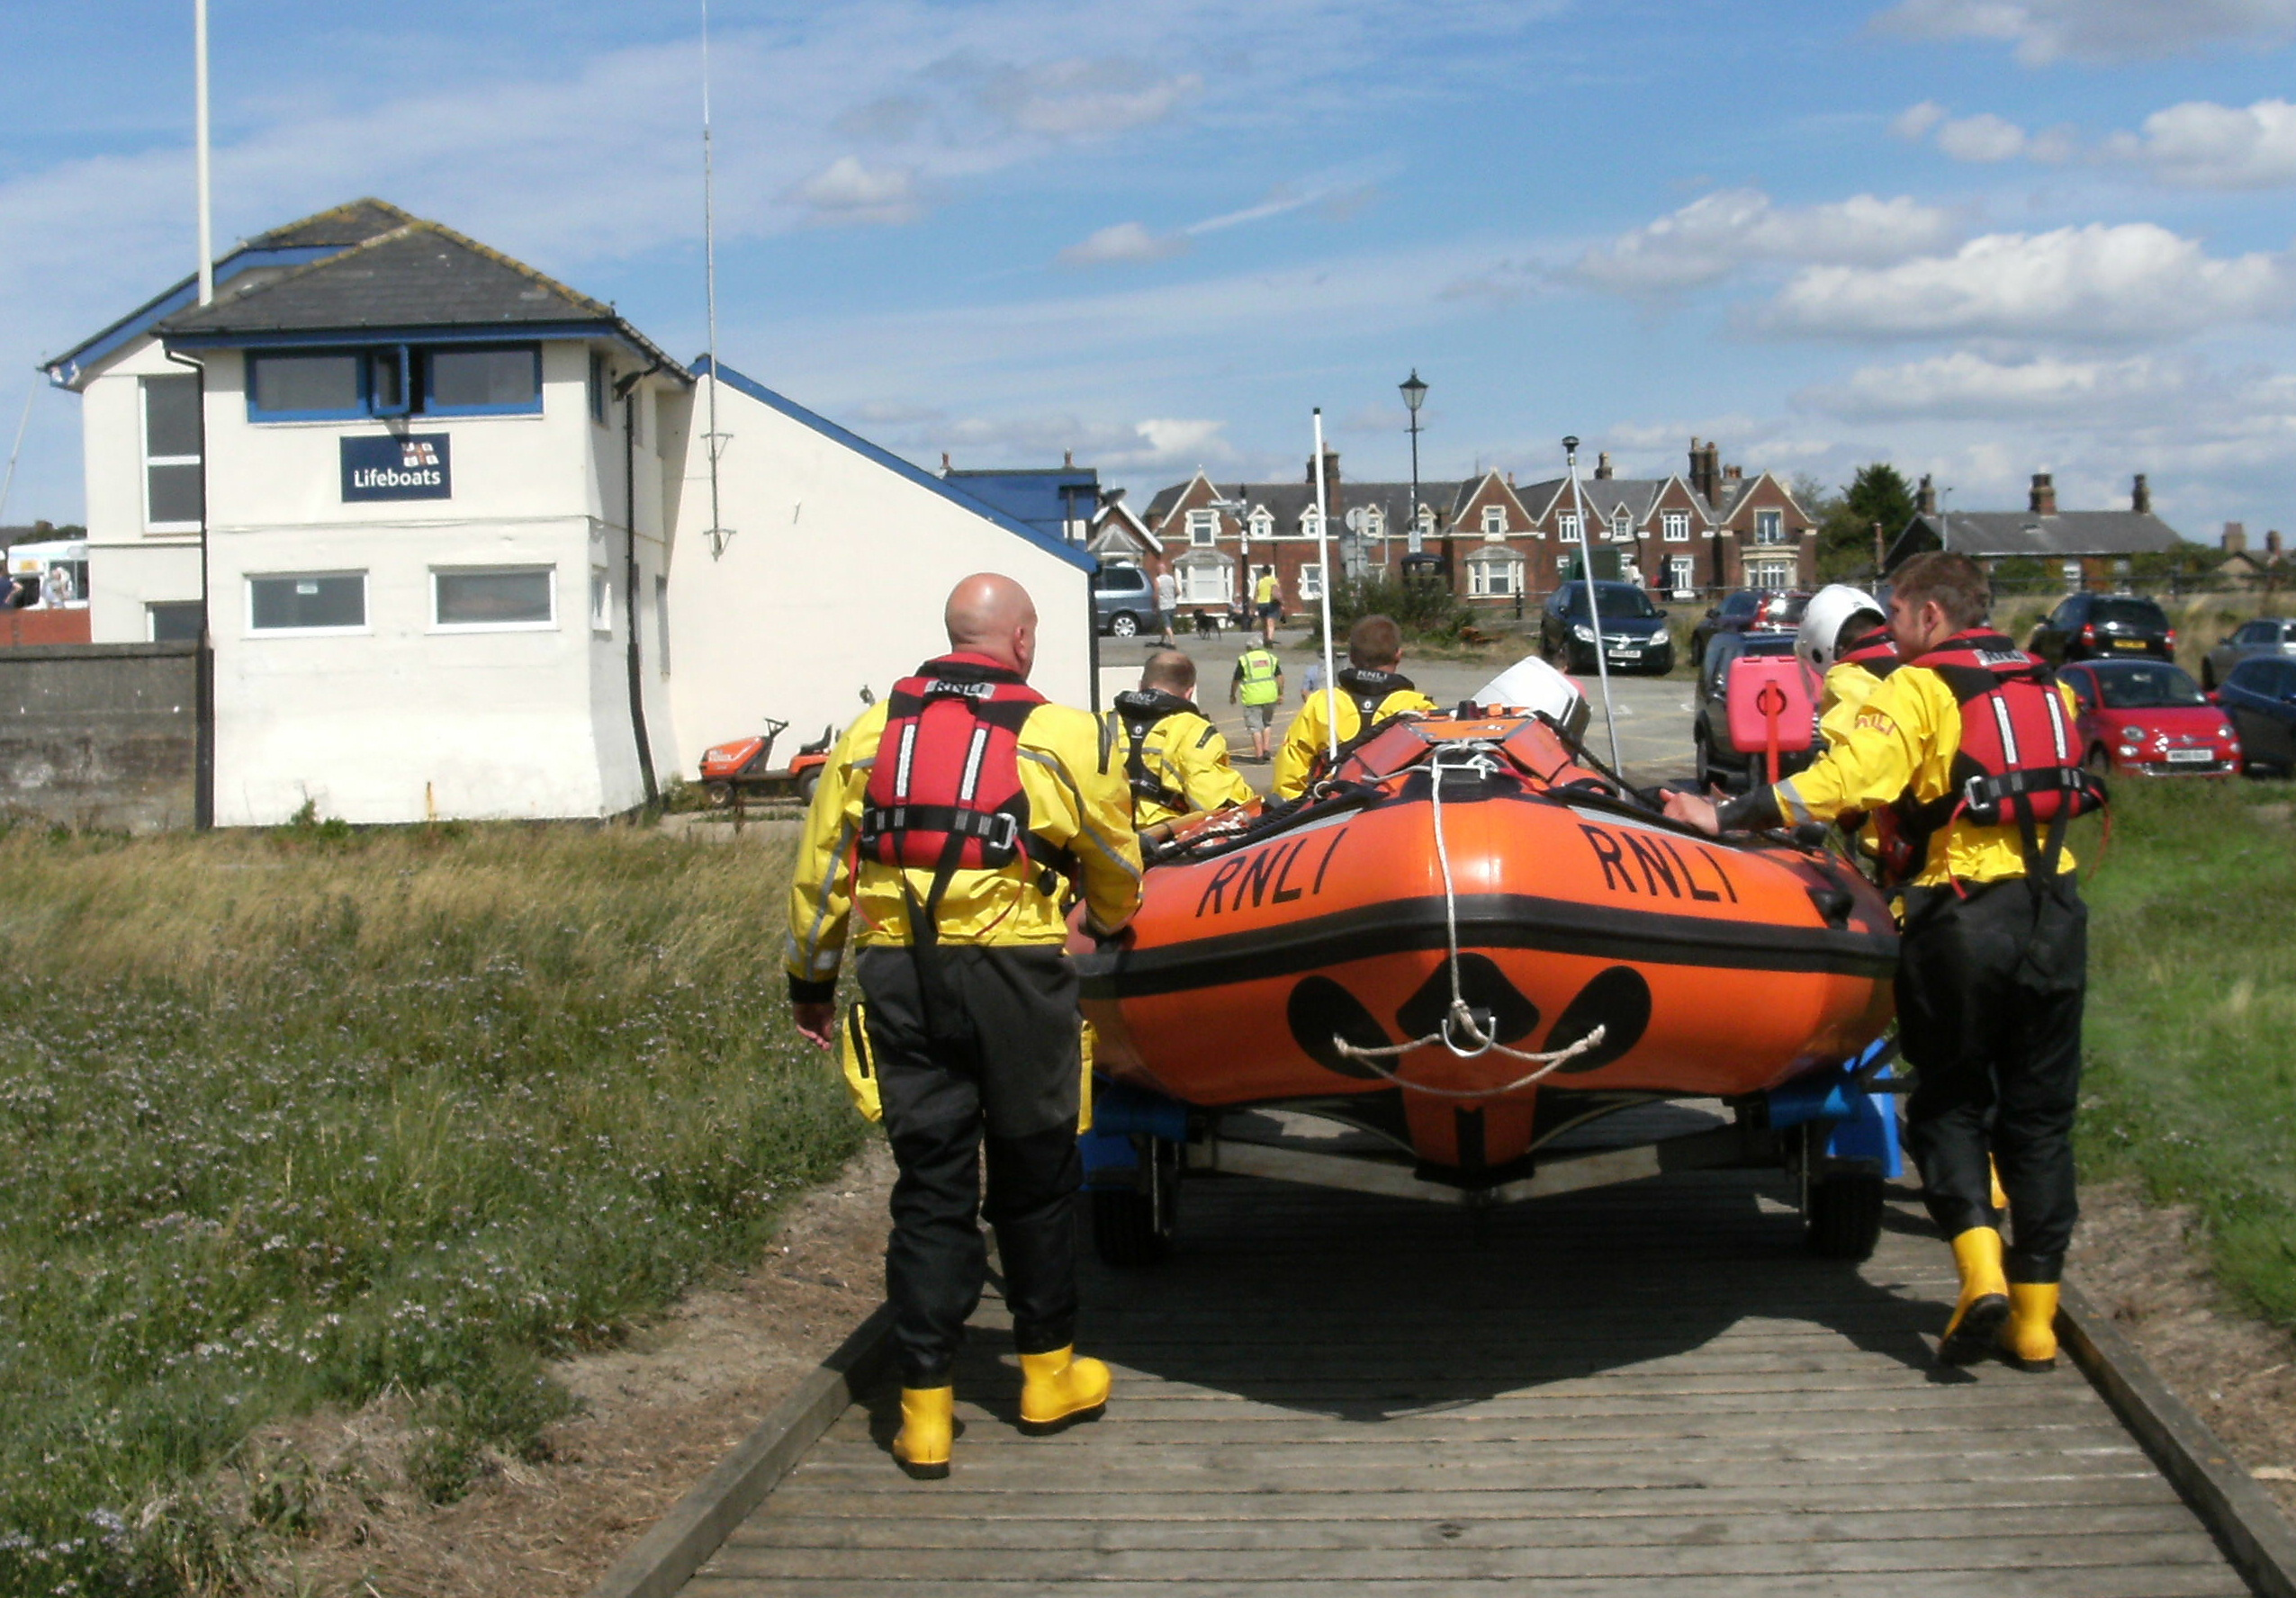 A group of lifeboat crew members pulling an inshore lifeboat along a wooden jetty towards her boathouse